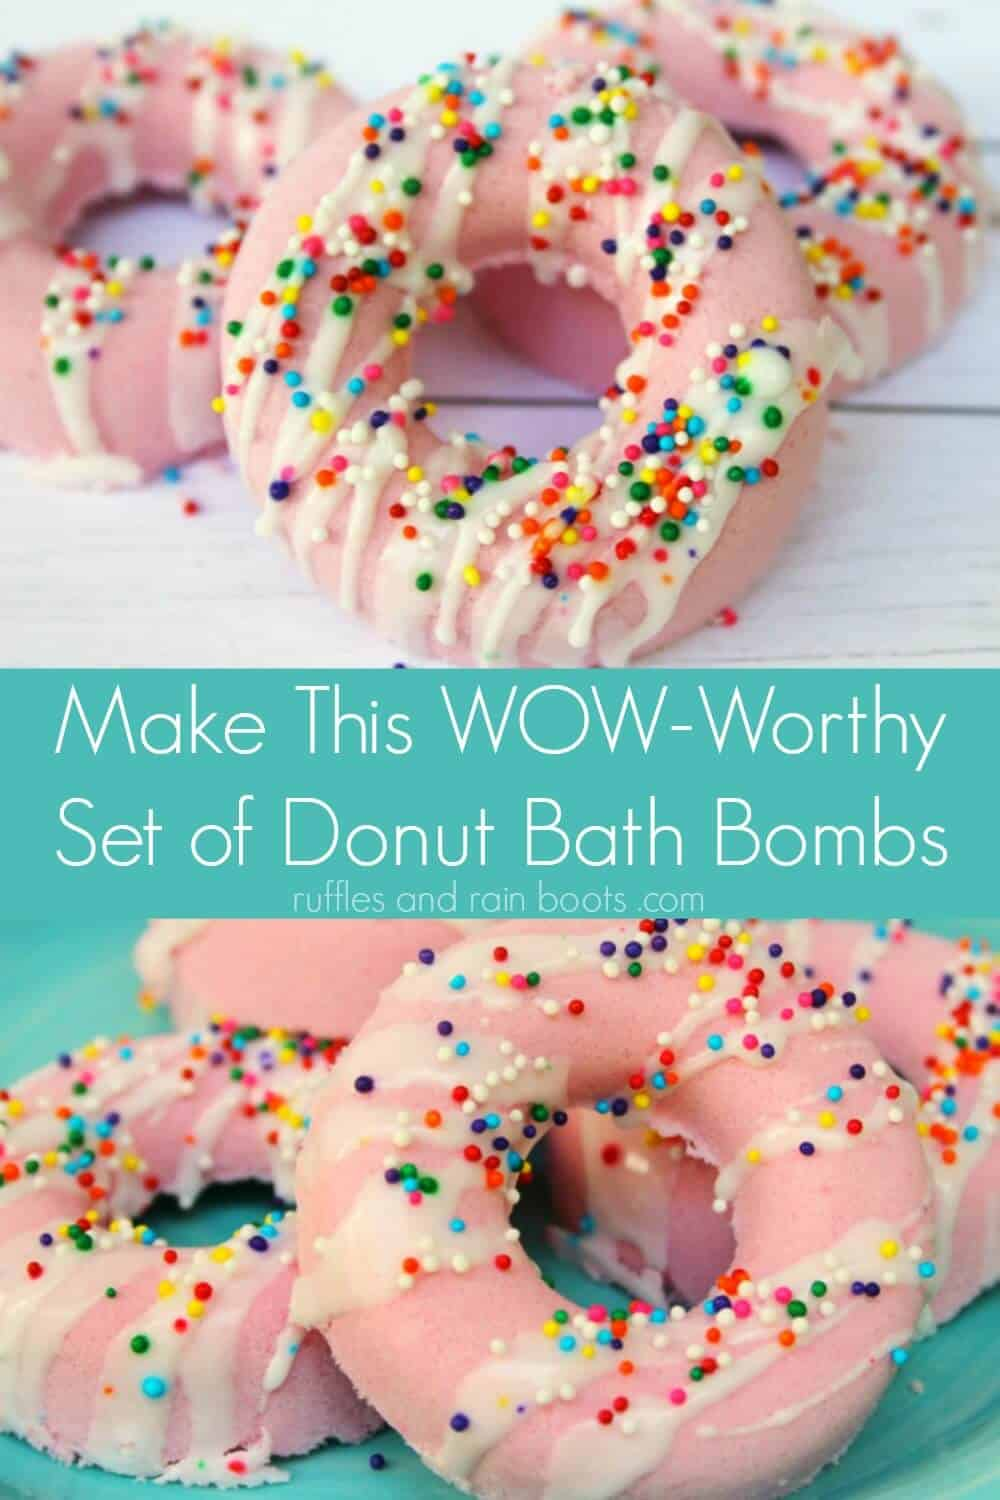 photo collage of donut bath bombs with text make this wow-worthy set of donut bath bombs